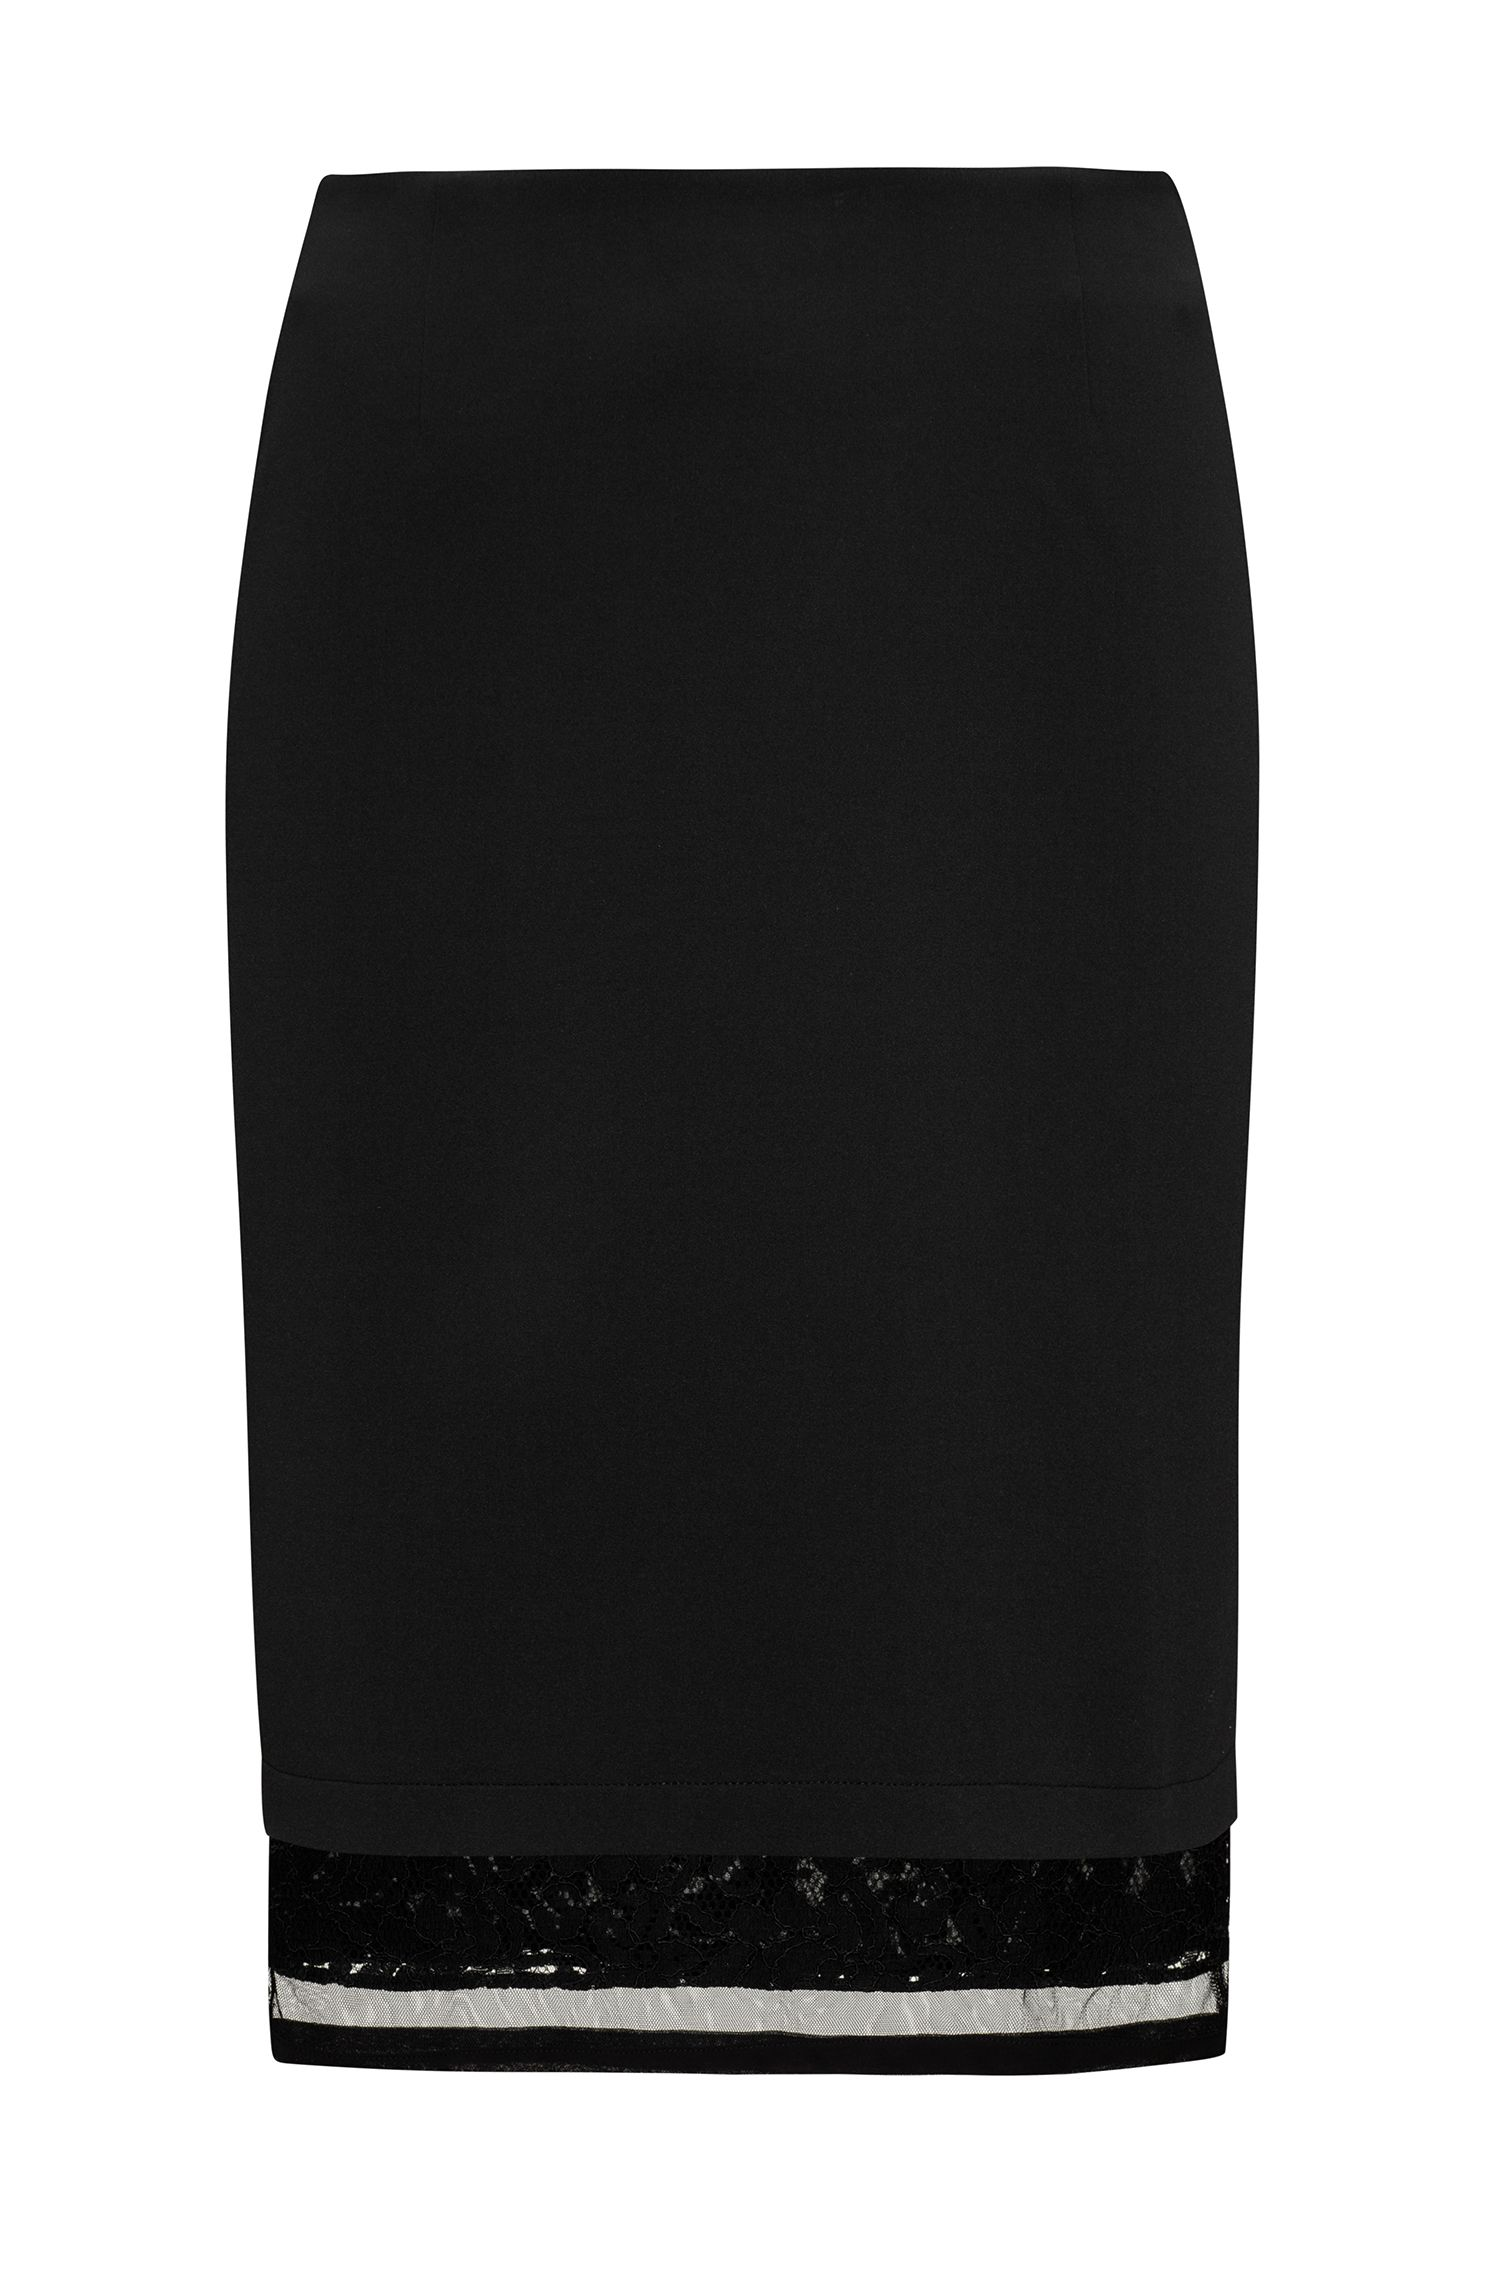 Bonded jersey knee-length skirt with extended lace and mesh hem